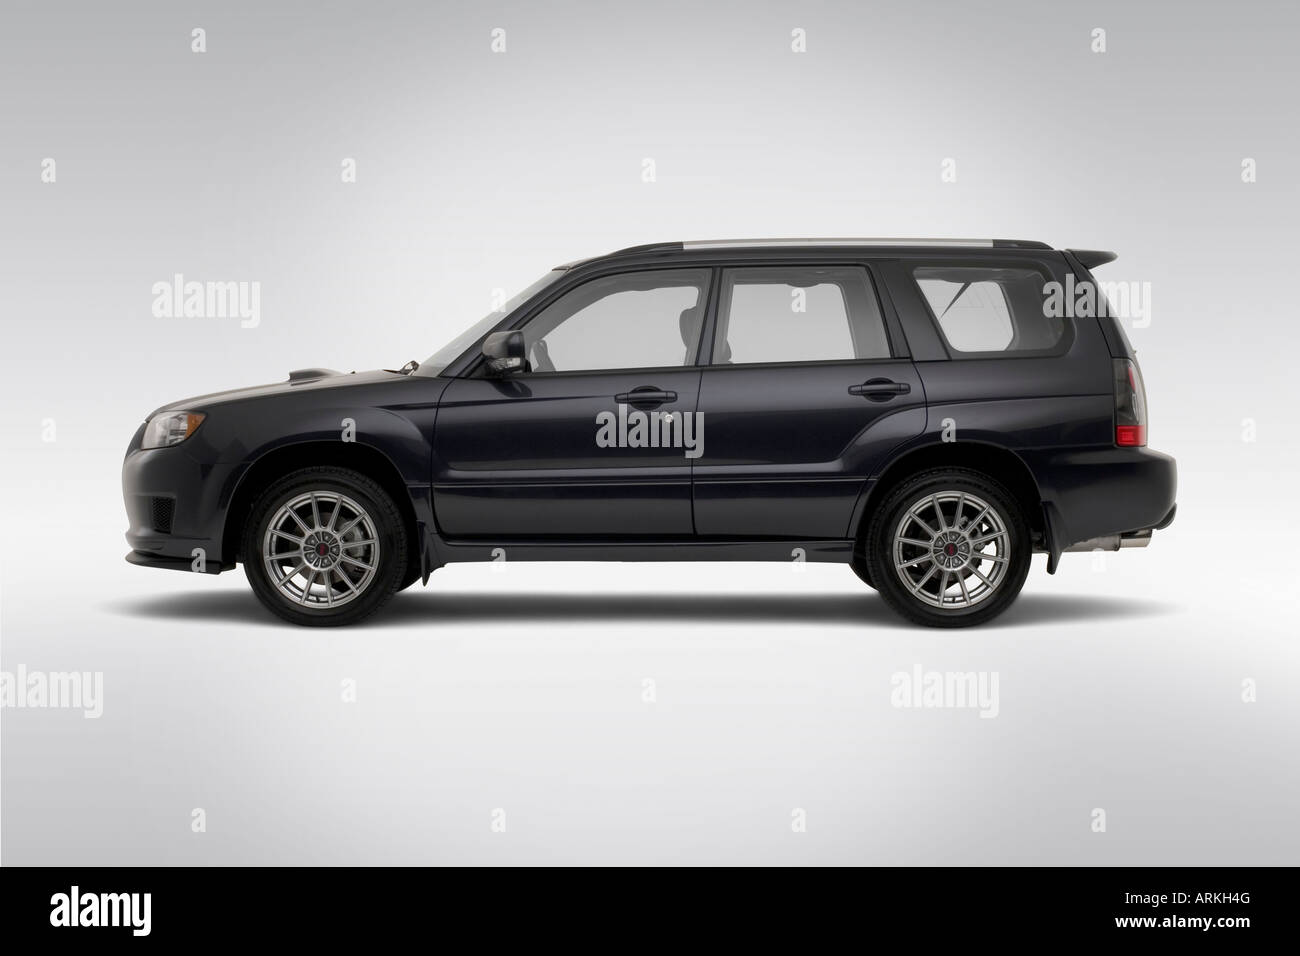 2008 subaru forester sports 2 5 xt in gray drivers side profile